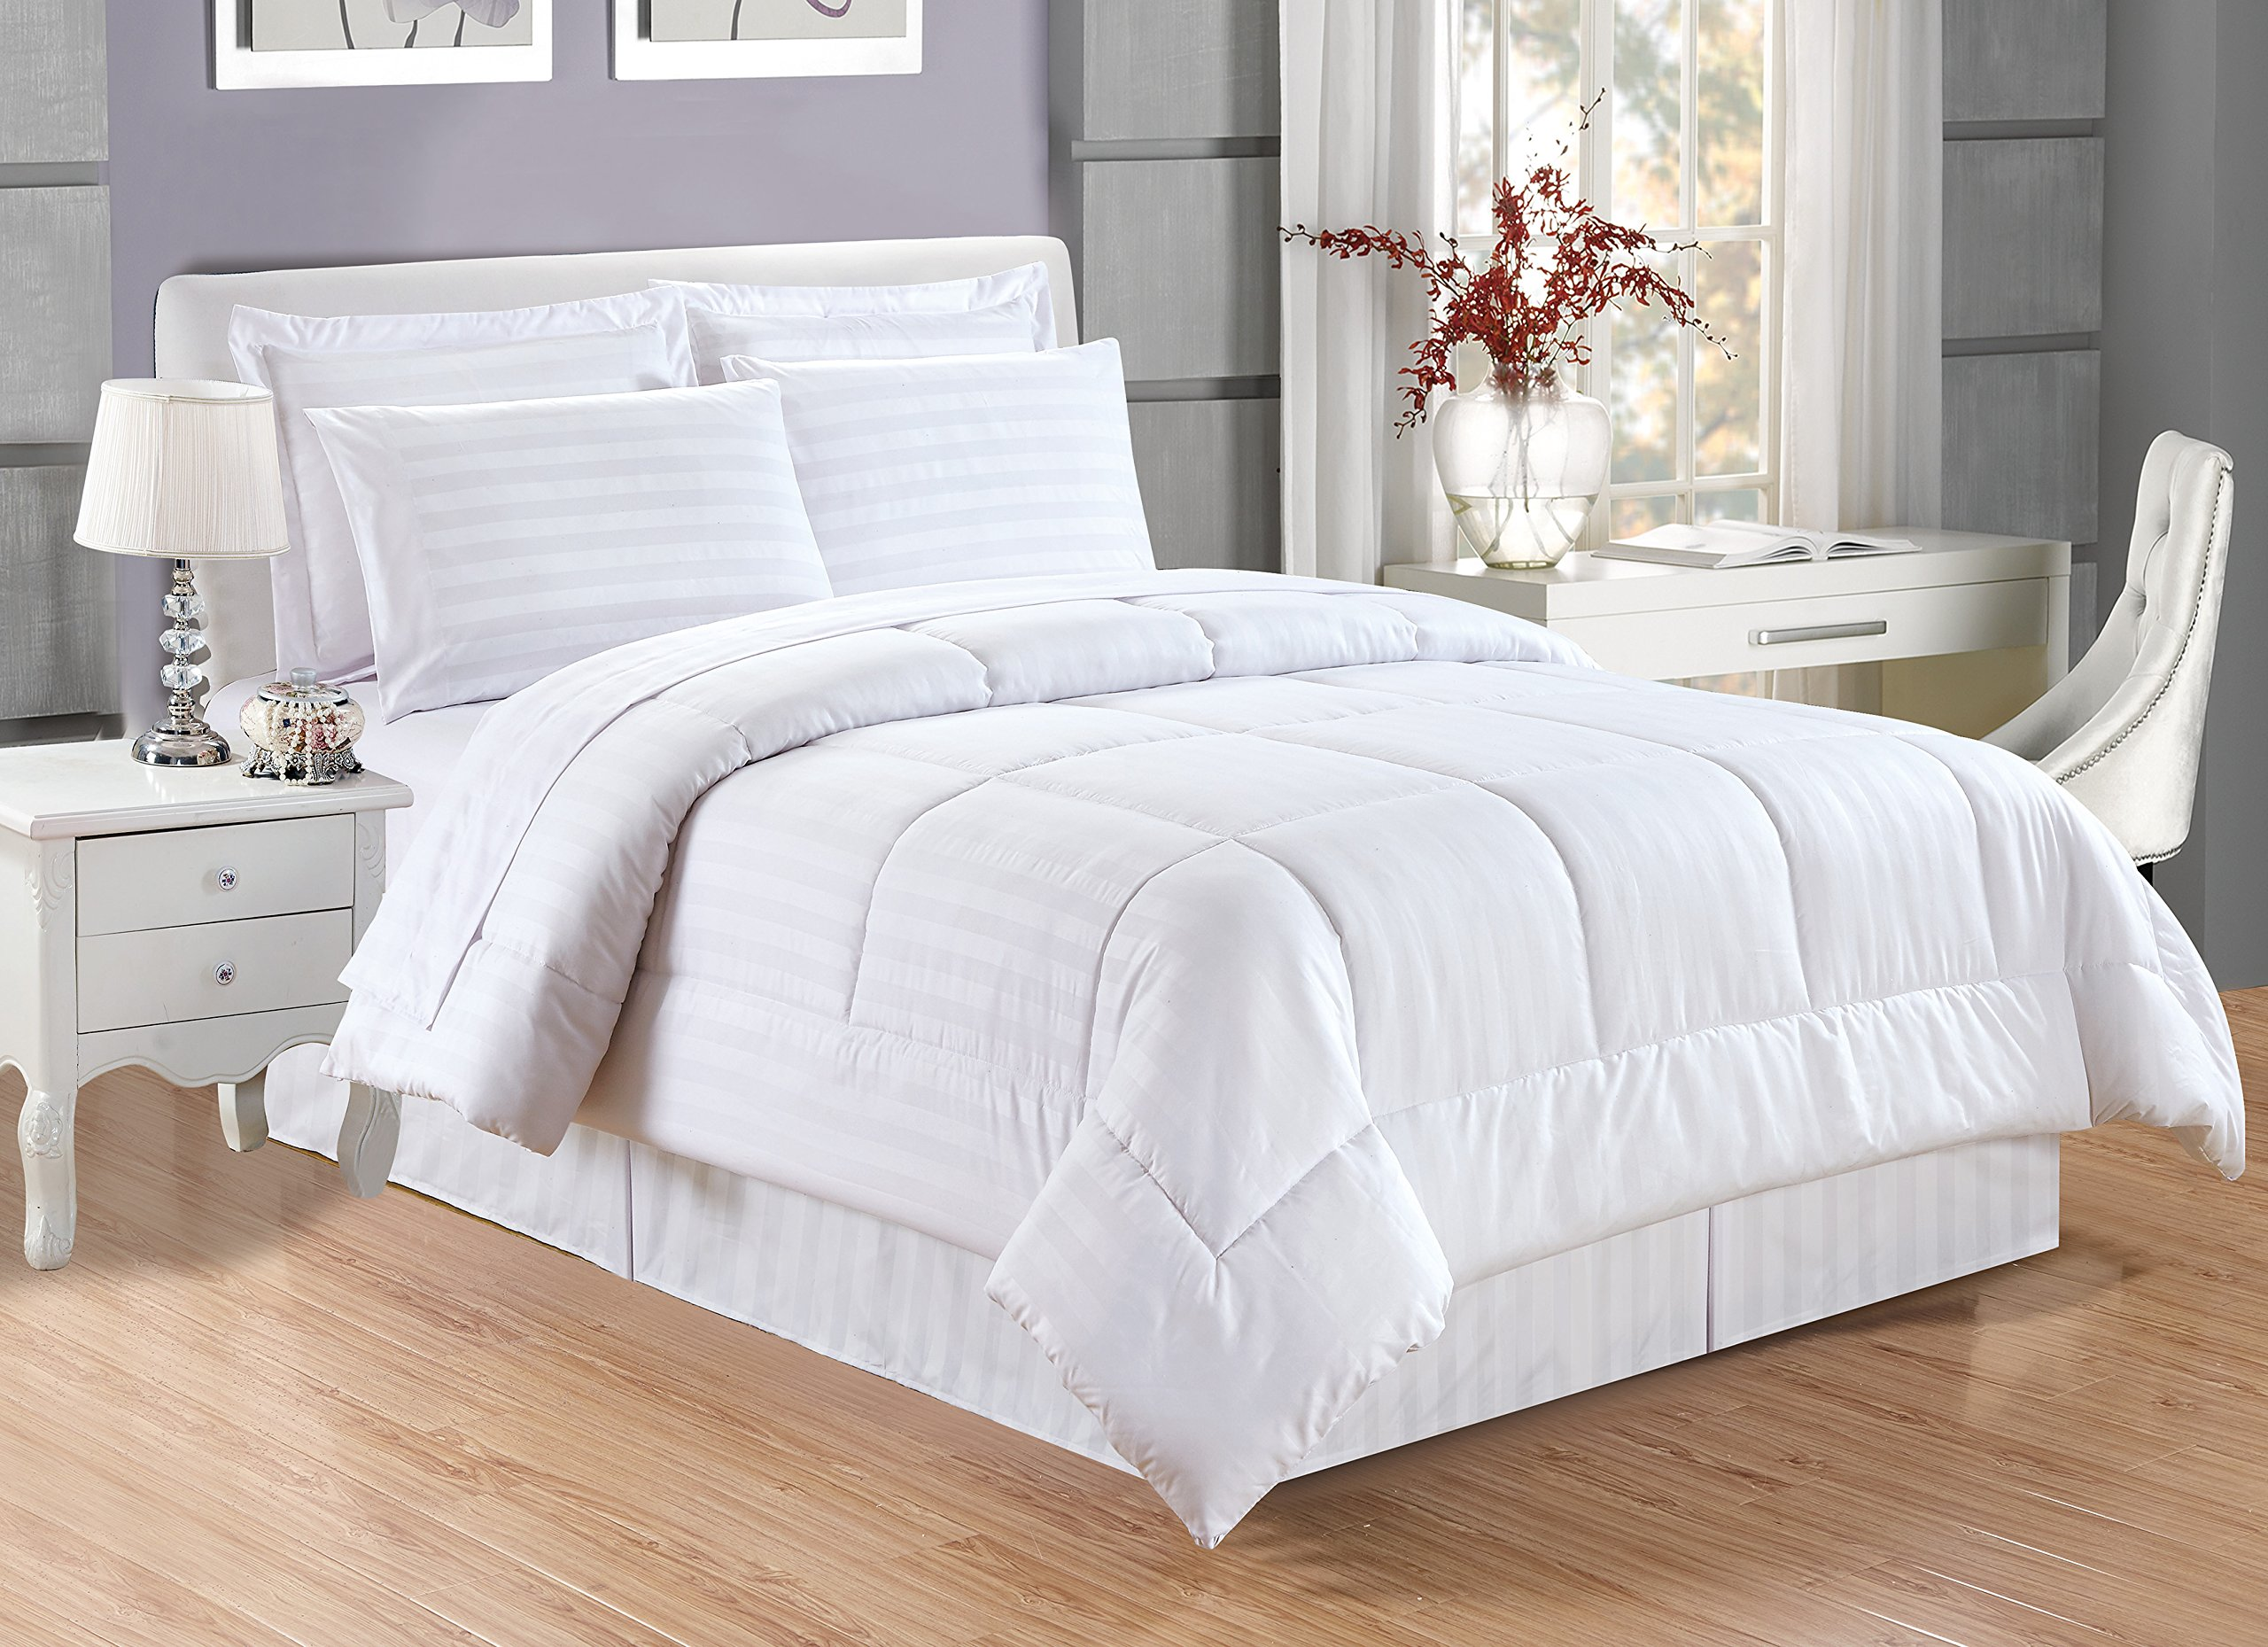 Grand Linen 8 piece Luxury WHITE Dobby Stripe Bed In A Bag Reversible Goose Down Alternative Comforter set, QUEEN SIZE with Matching Sheet Set, Hypoallergenic, Siliconized Fiberfill, Box Stitched by Grand Linen